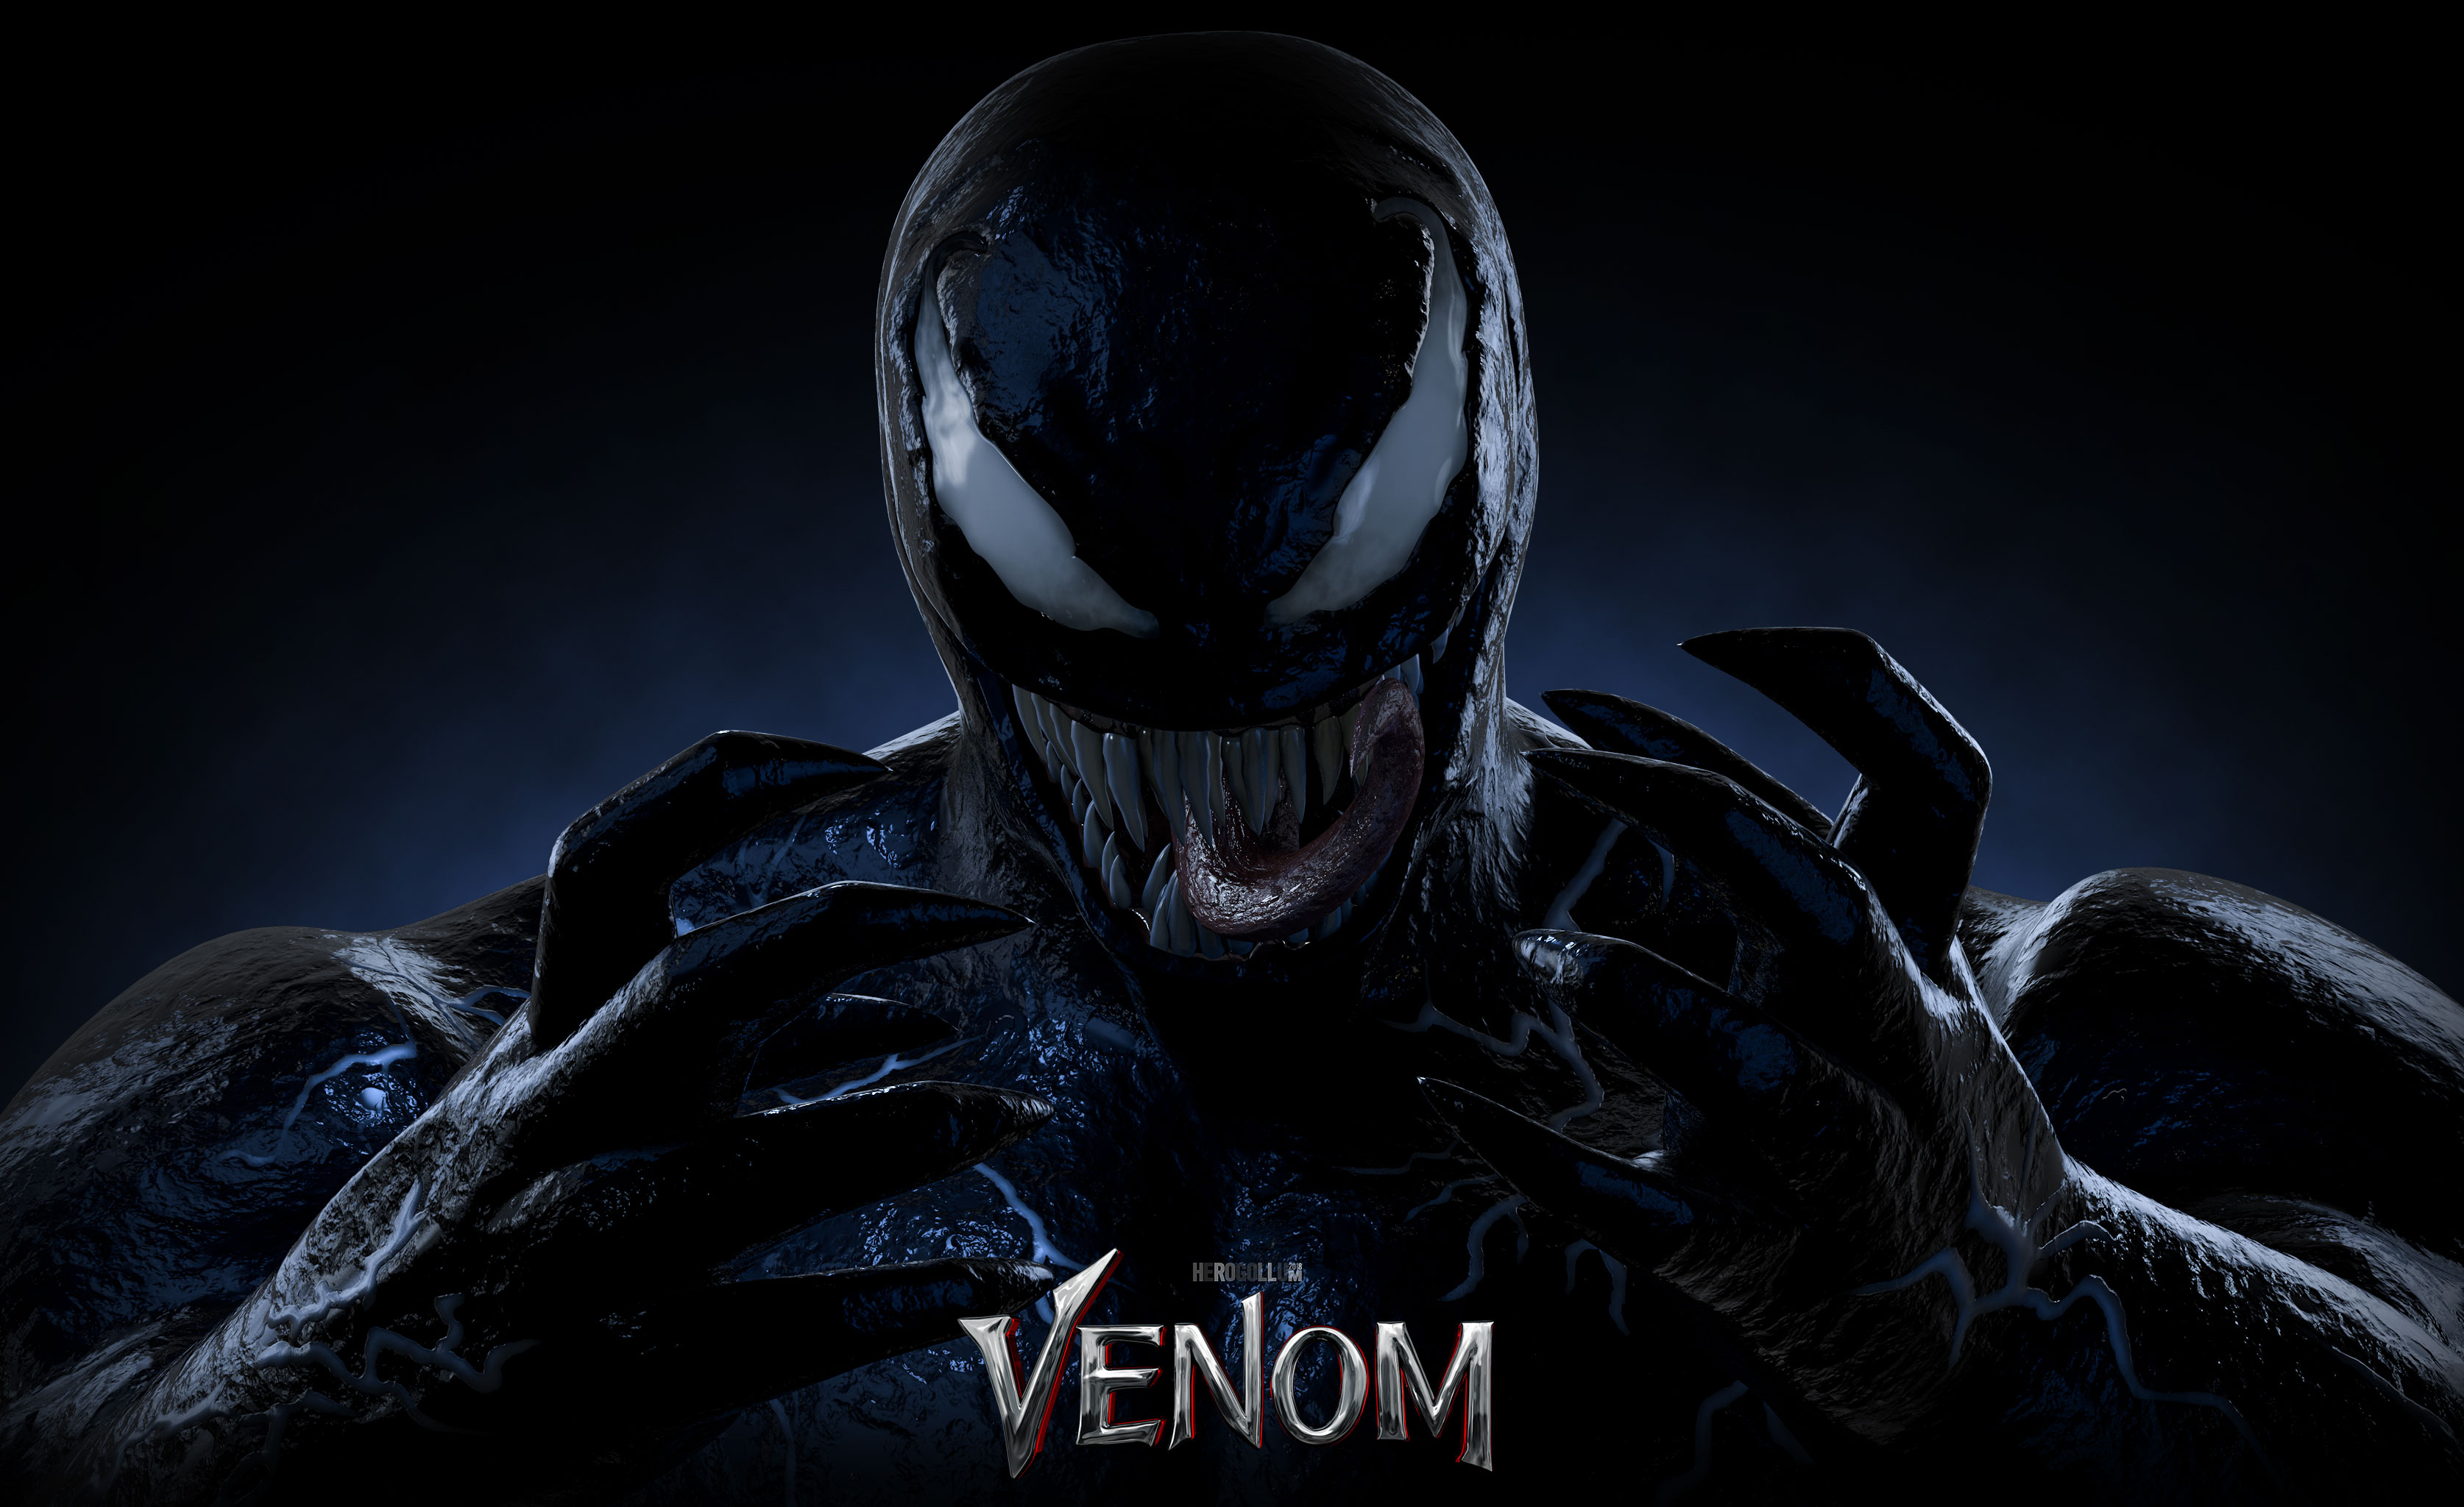 Venom Digital Art 4k 2018 Hd Superheroes 4k Wallpapers Images